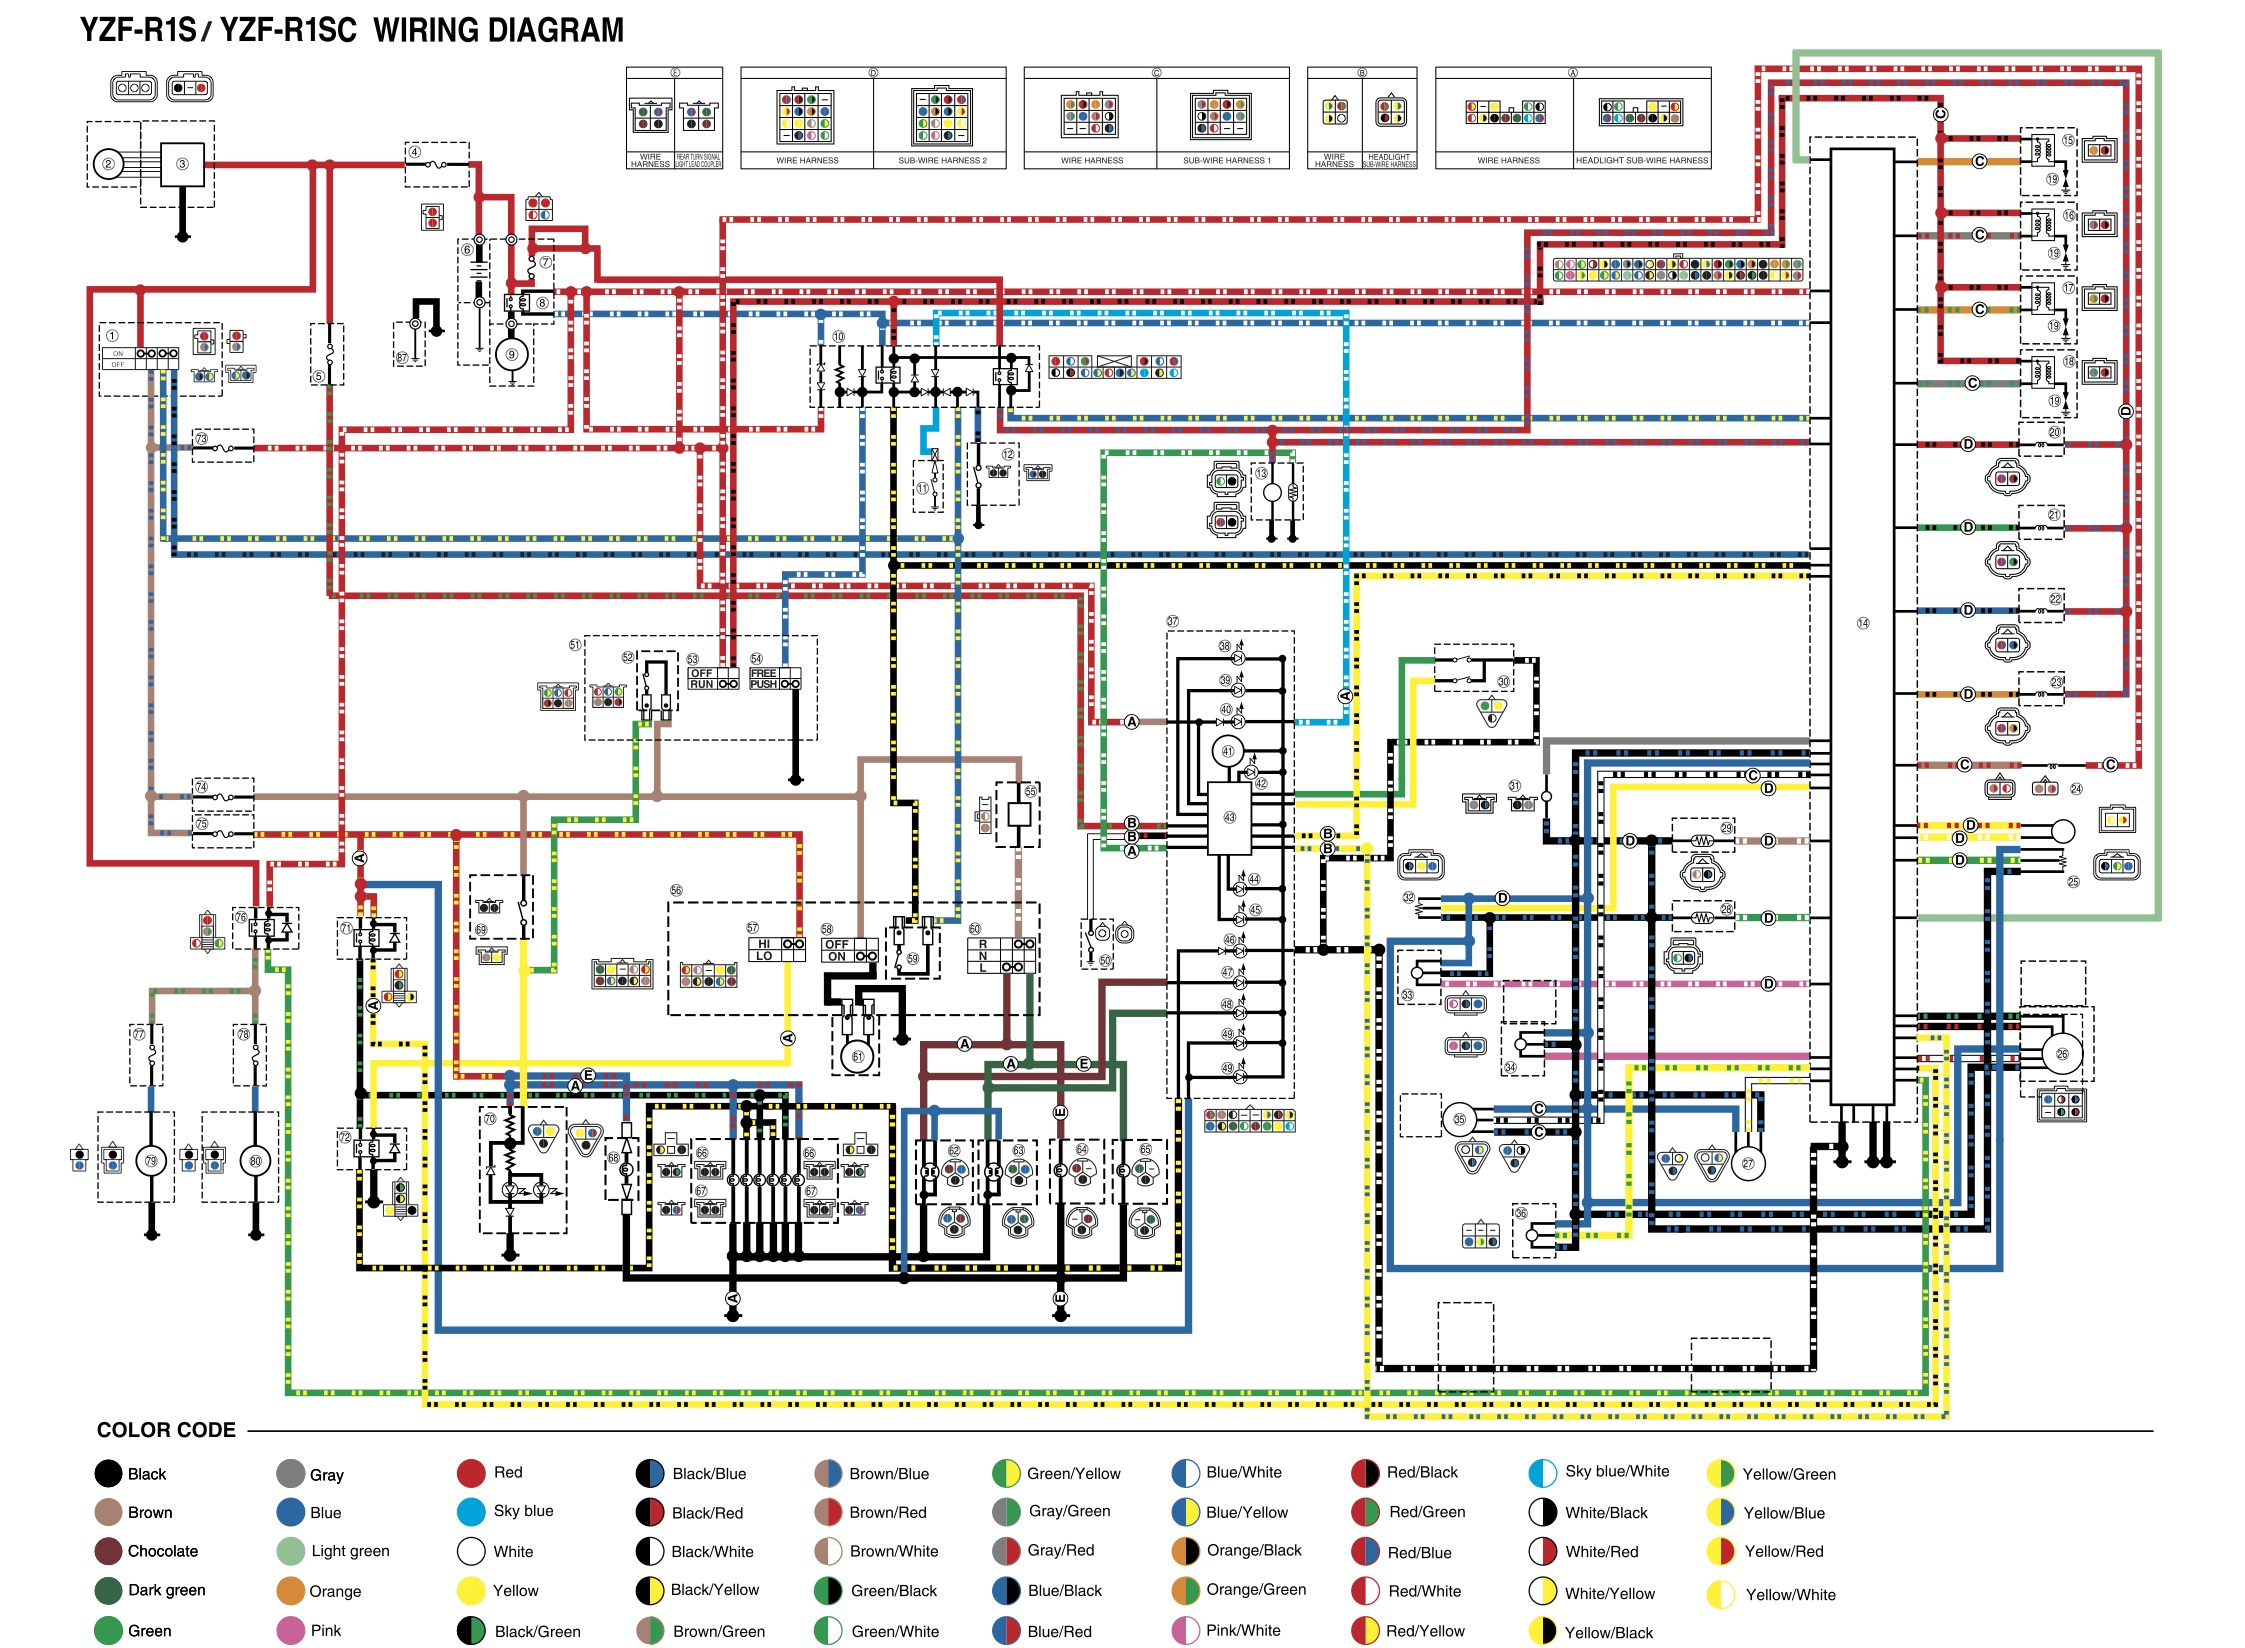 04R1_wiring_diagram r1 wiring help 2008 yamaha r1 wiring diagram at bakdesigns.co